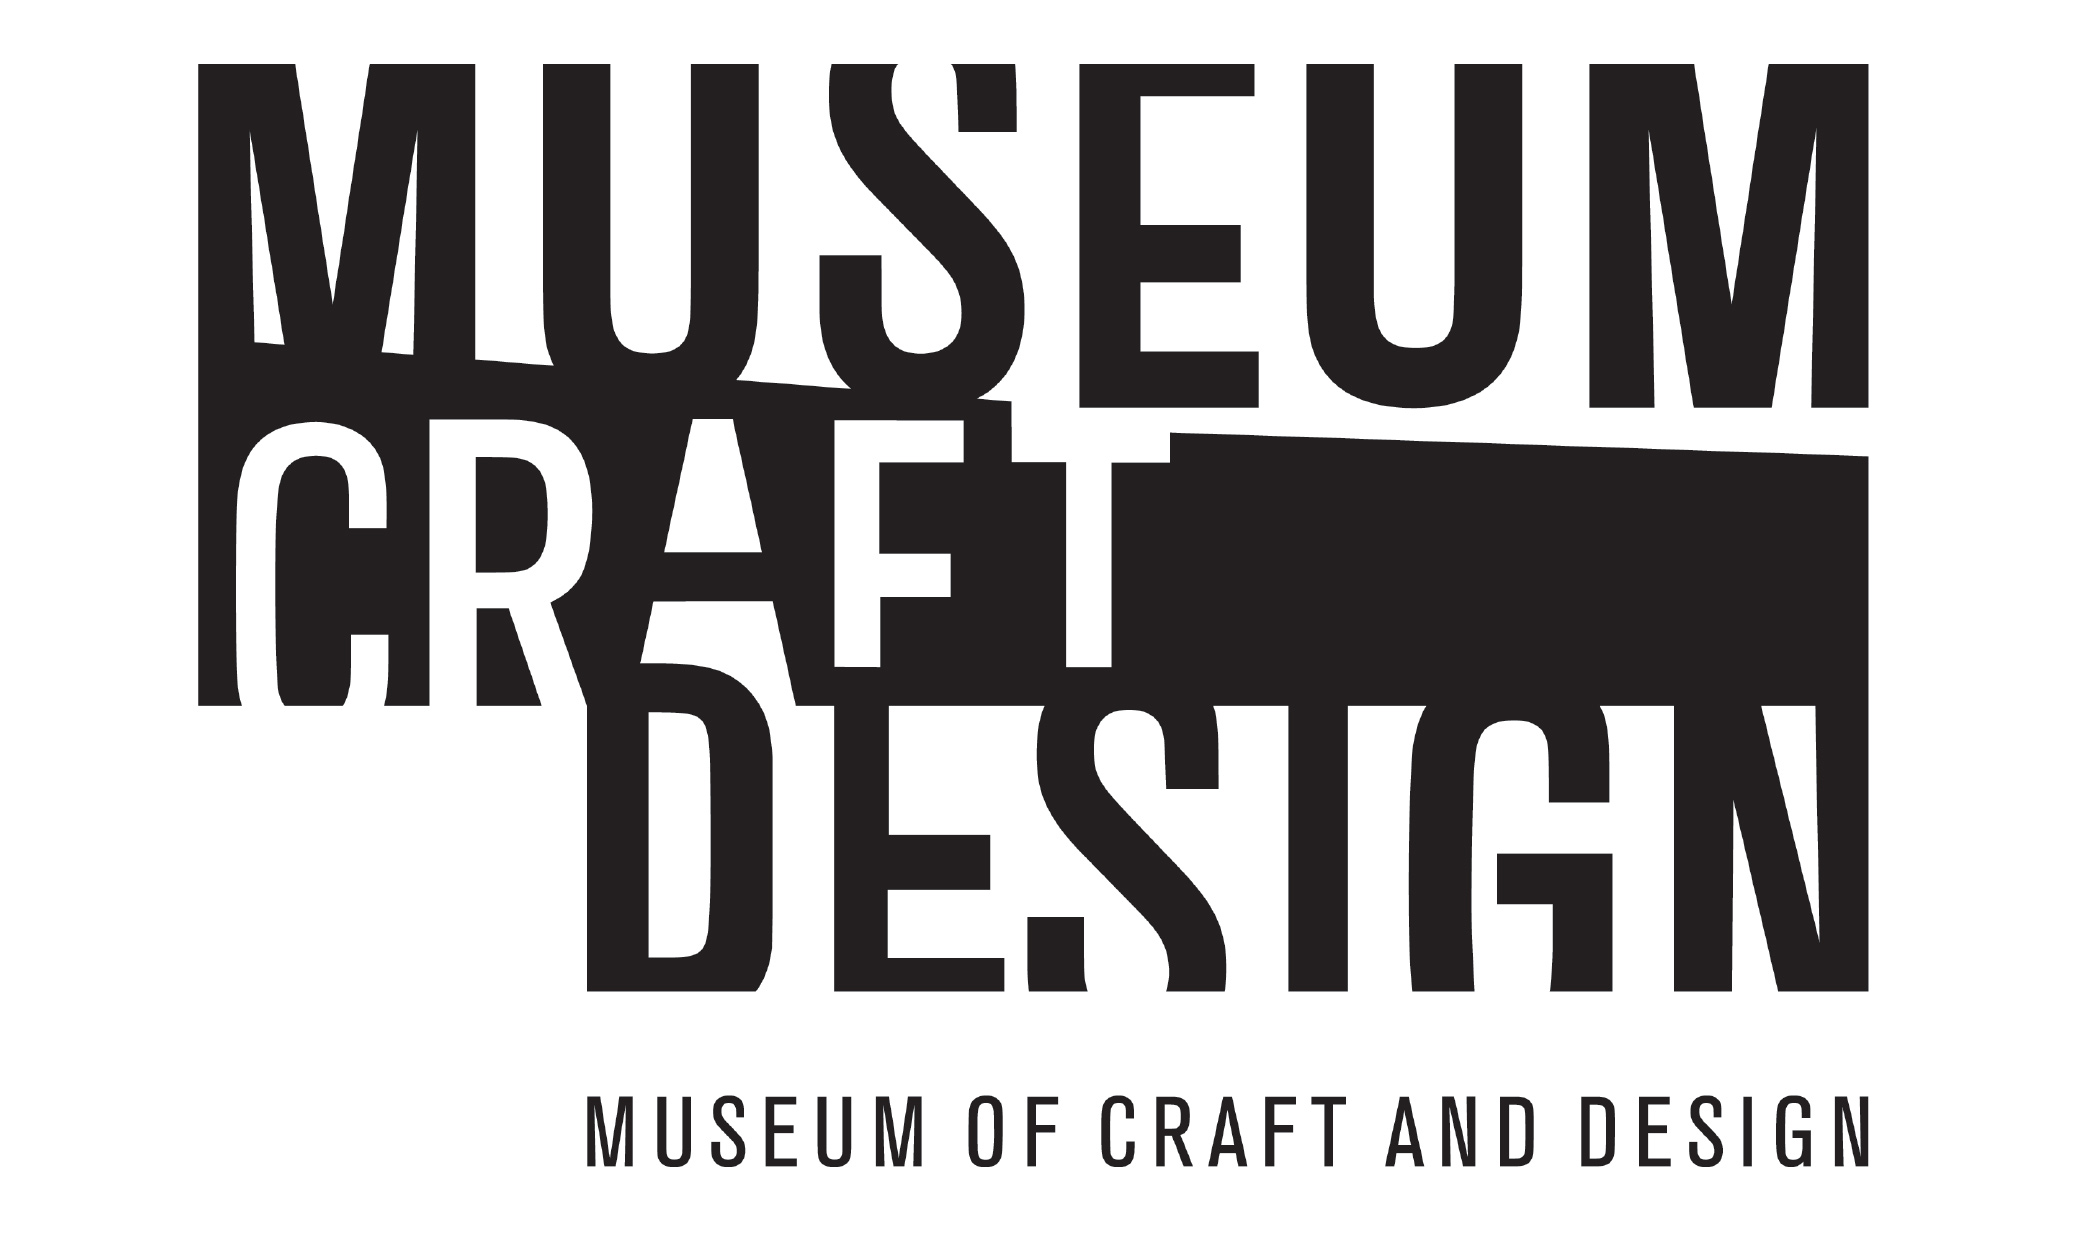 The Museum of Craft and Design